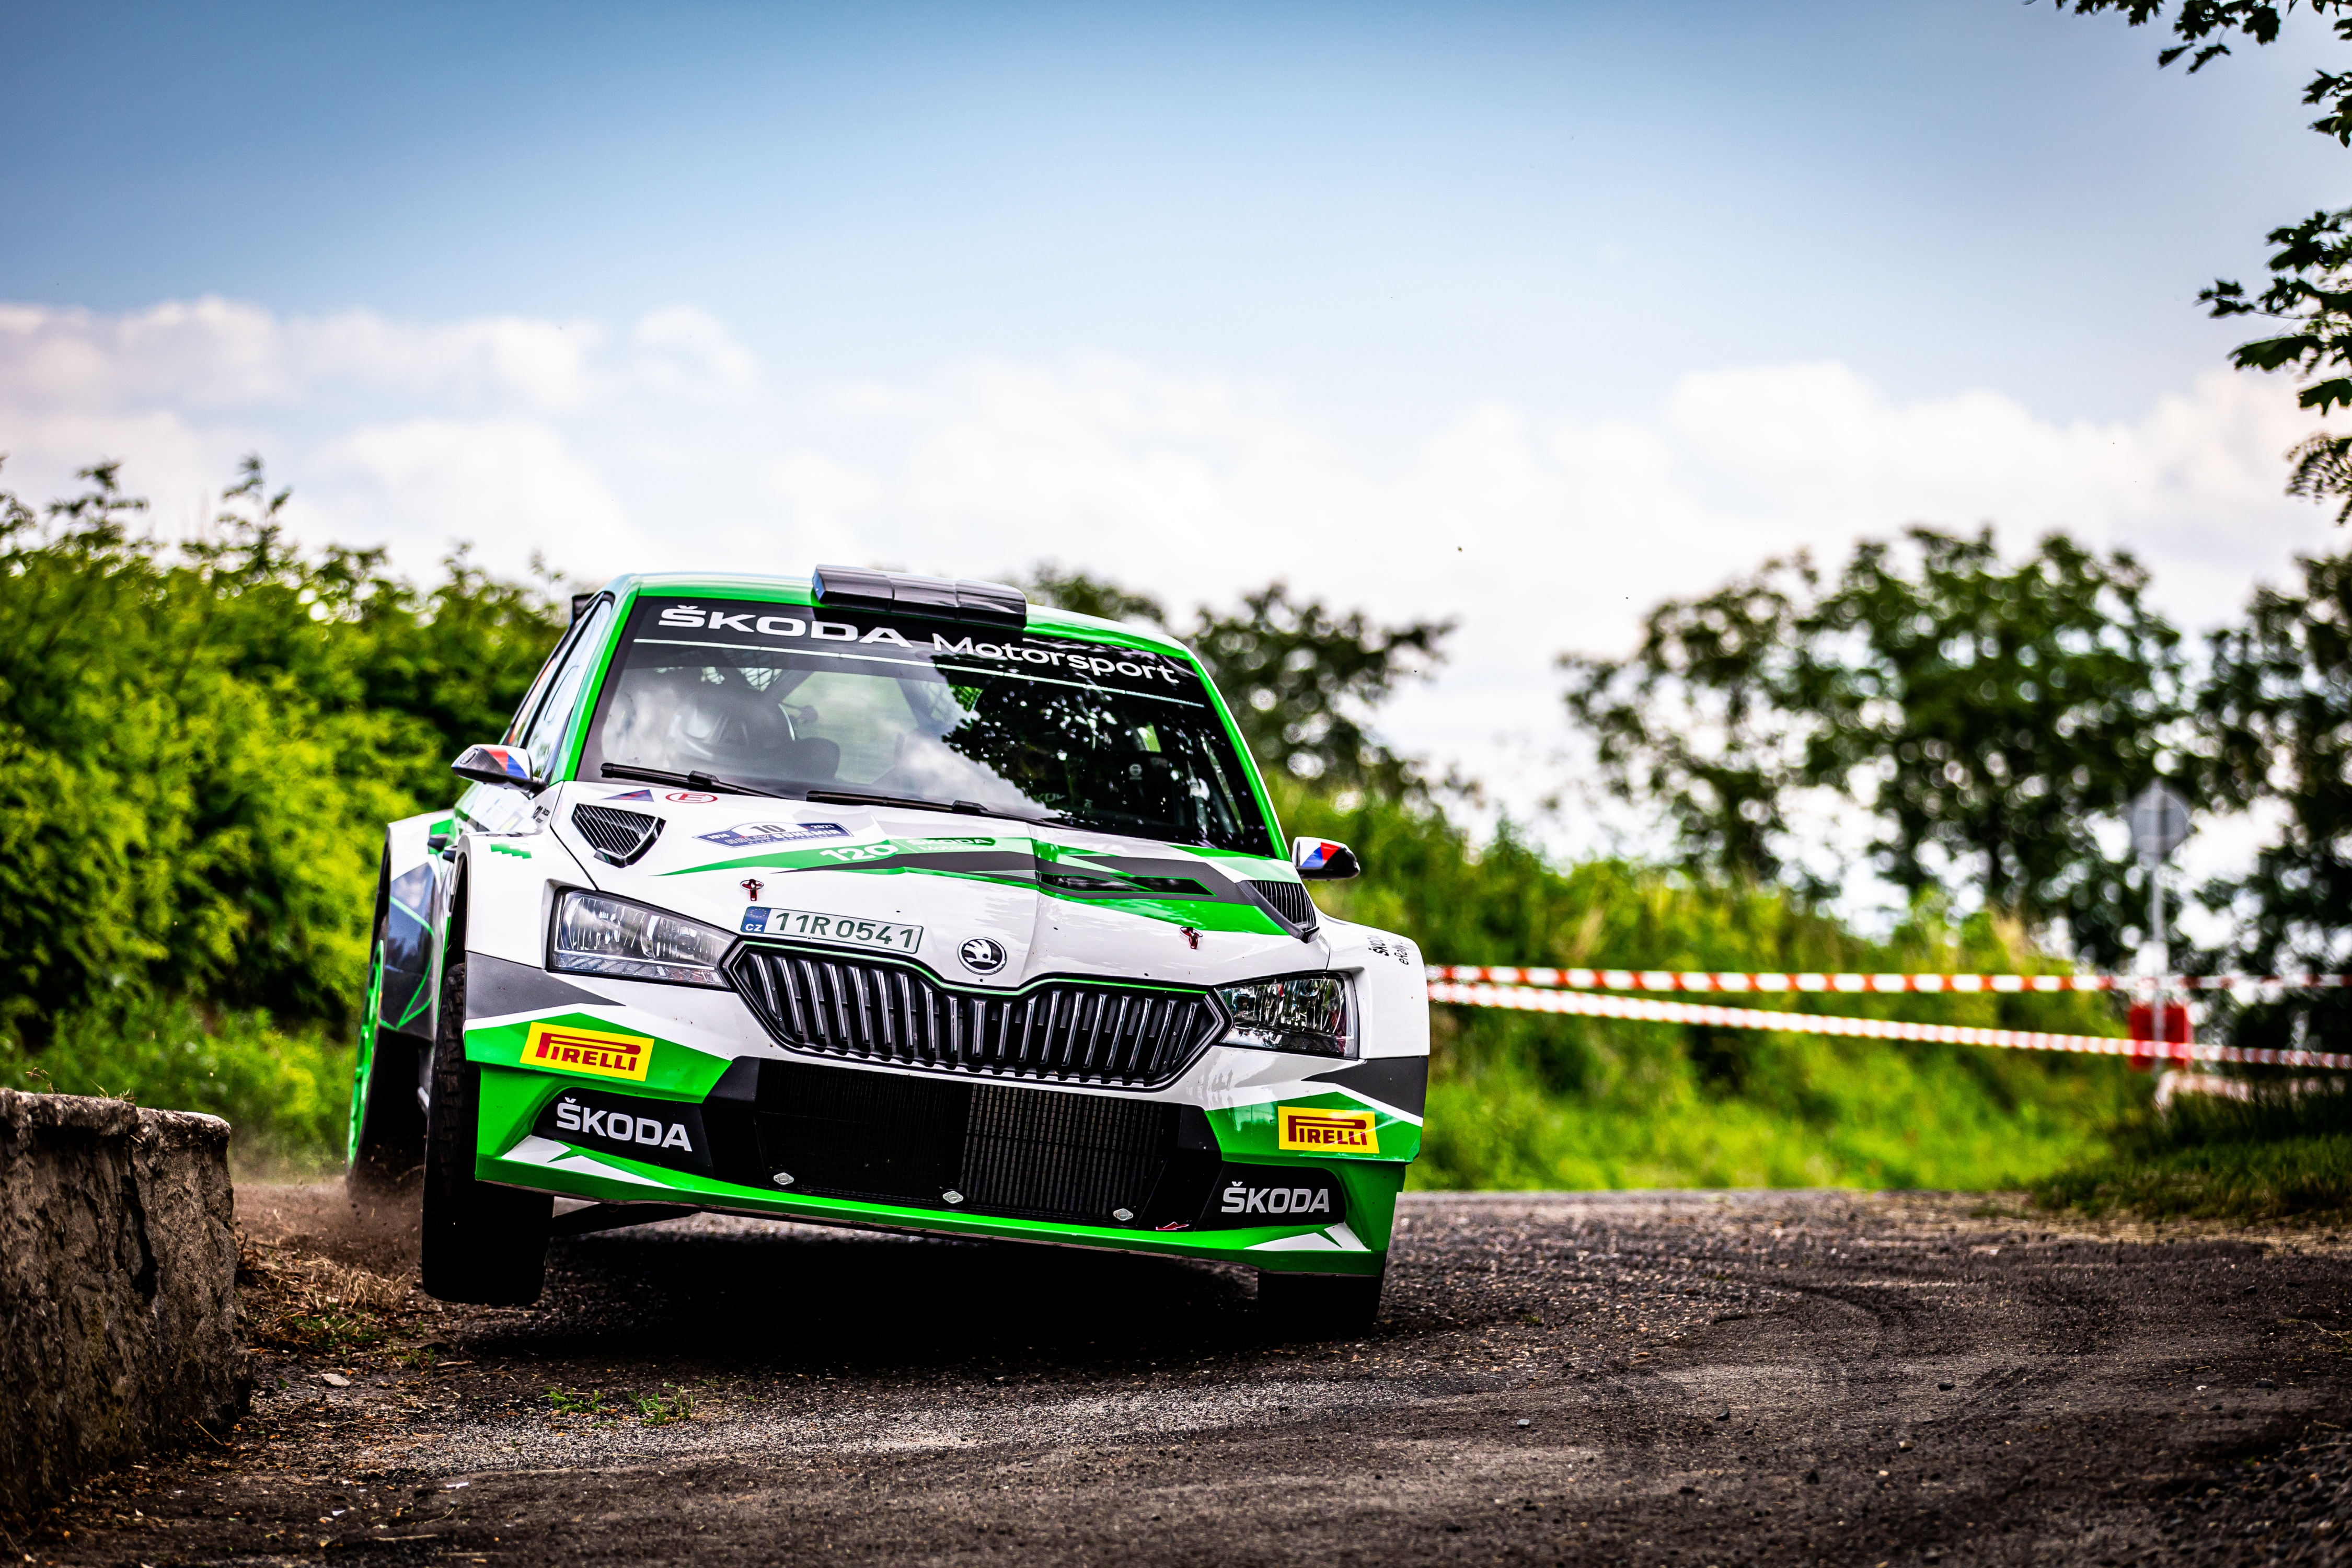 SKODA Motorsport continues to promote young drivers – Dominik Stříteský to debut in FIA World Rally Championship - Image 1